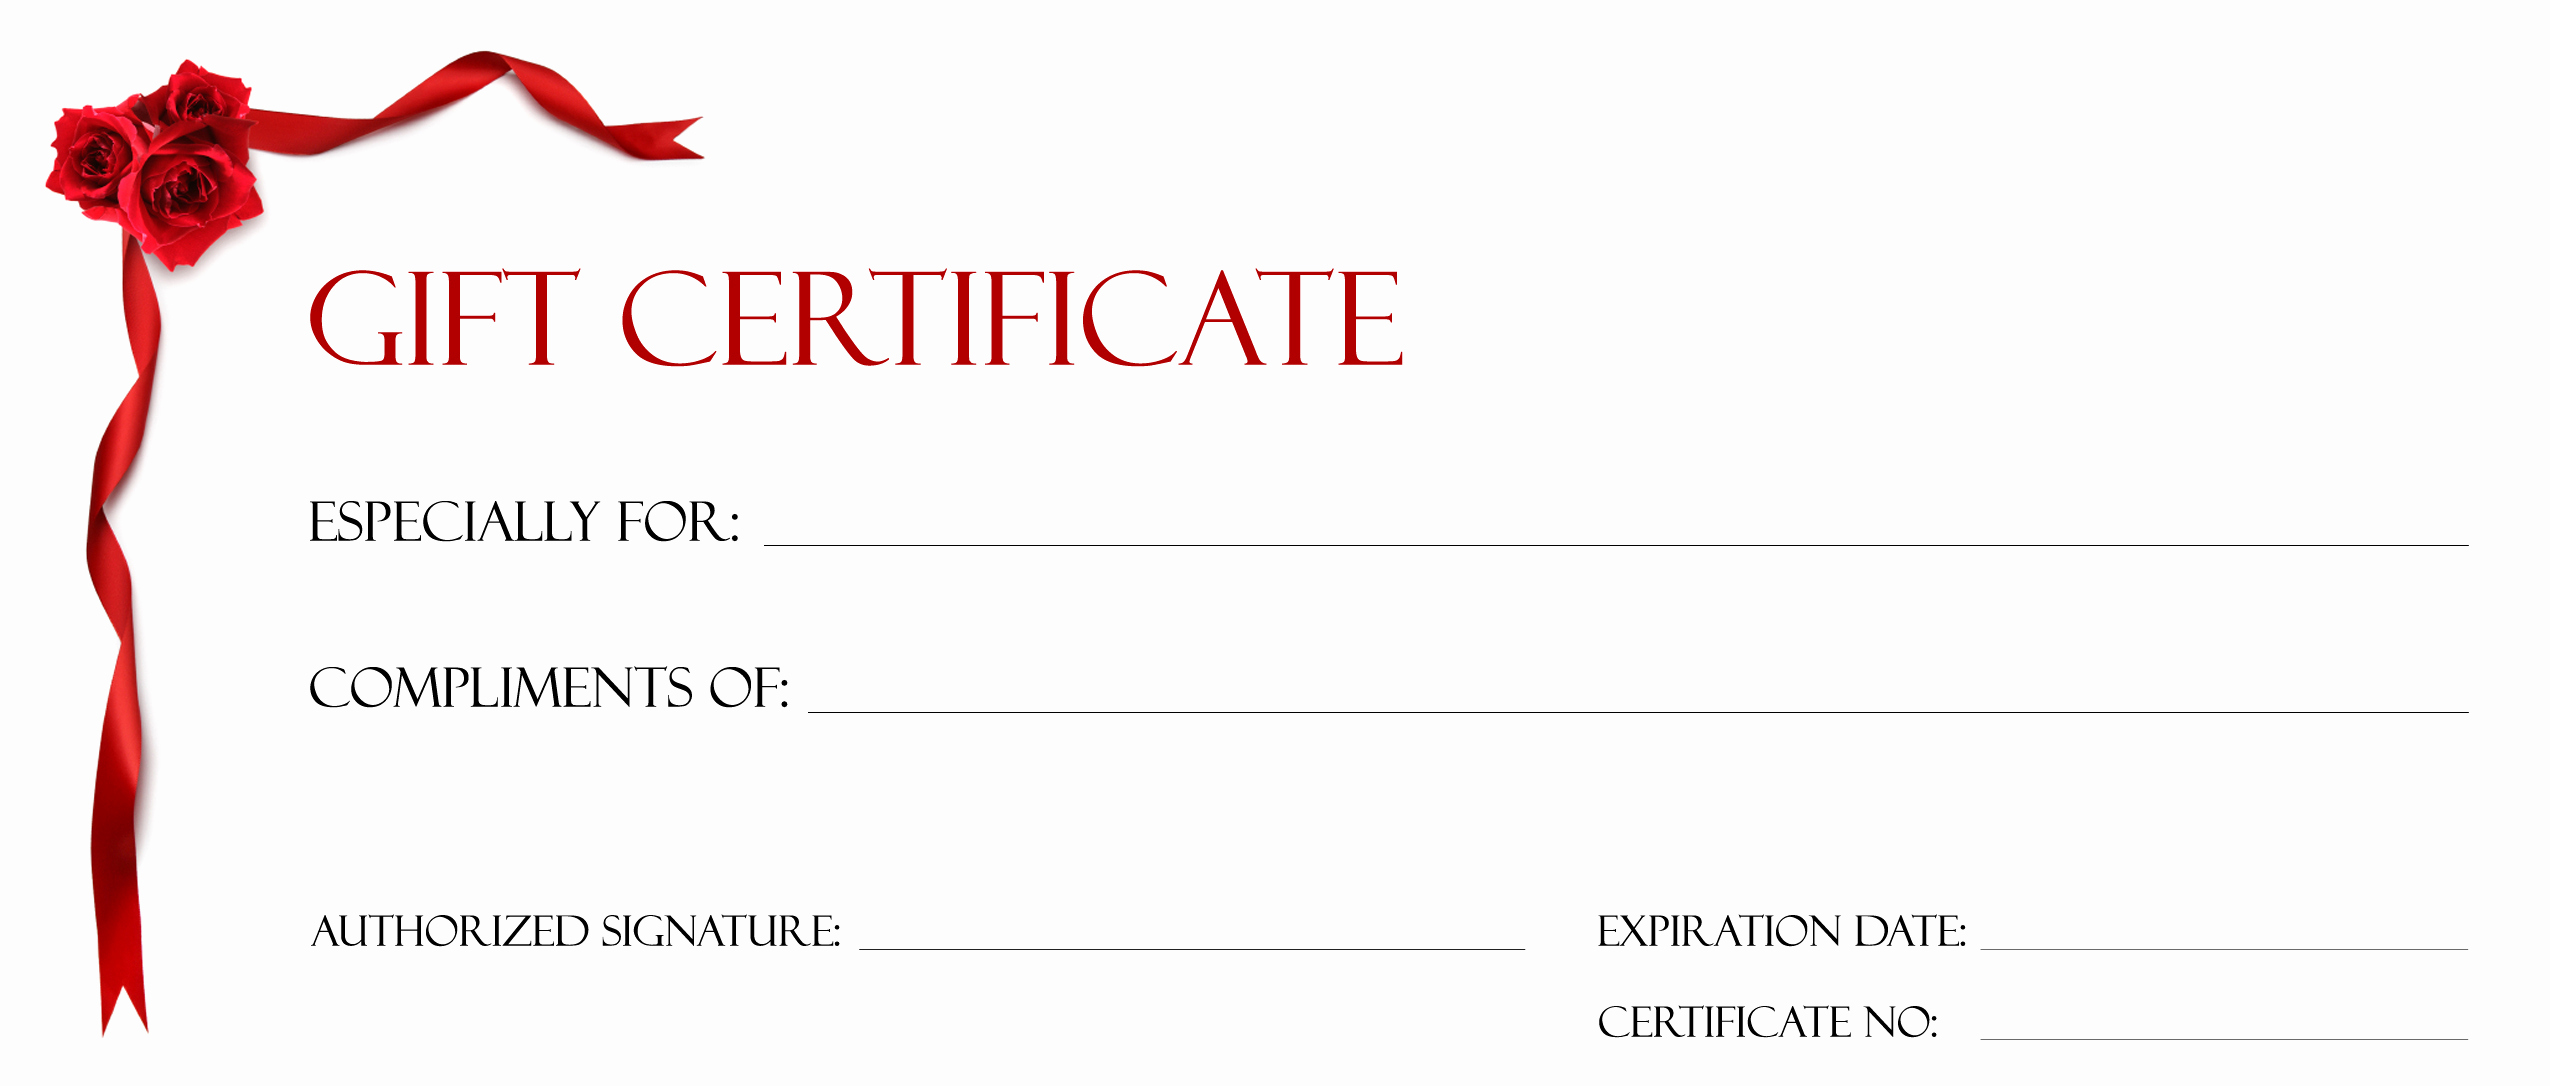 Google Docs Gift Certificate Template New Gift Certificate Make Your Own